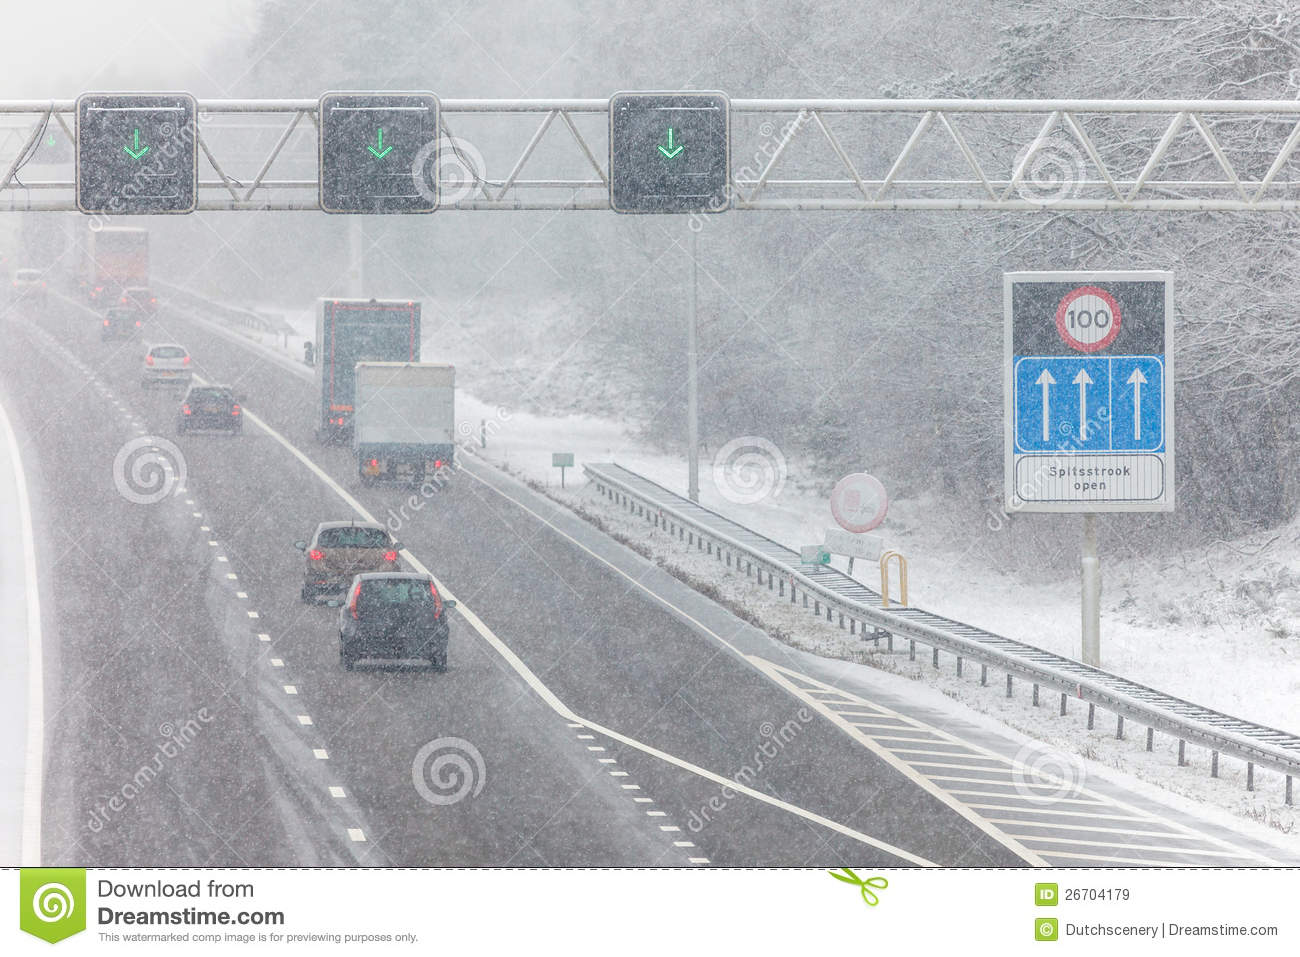 Dutch highway during winter snow